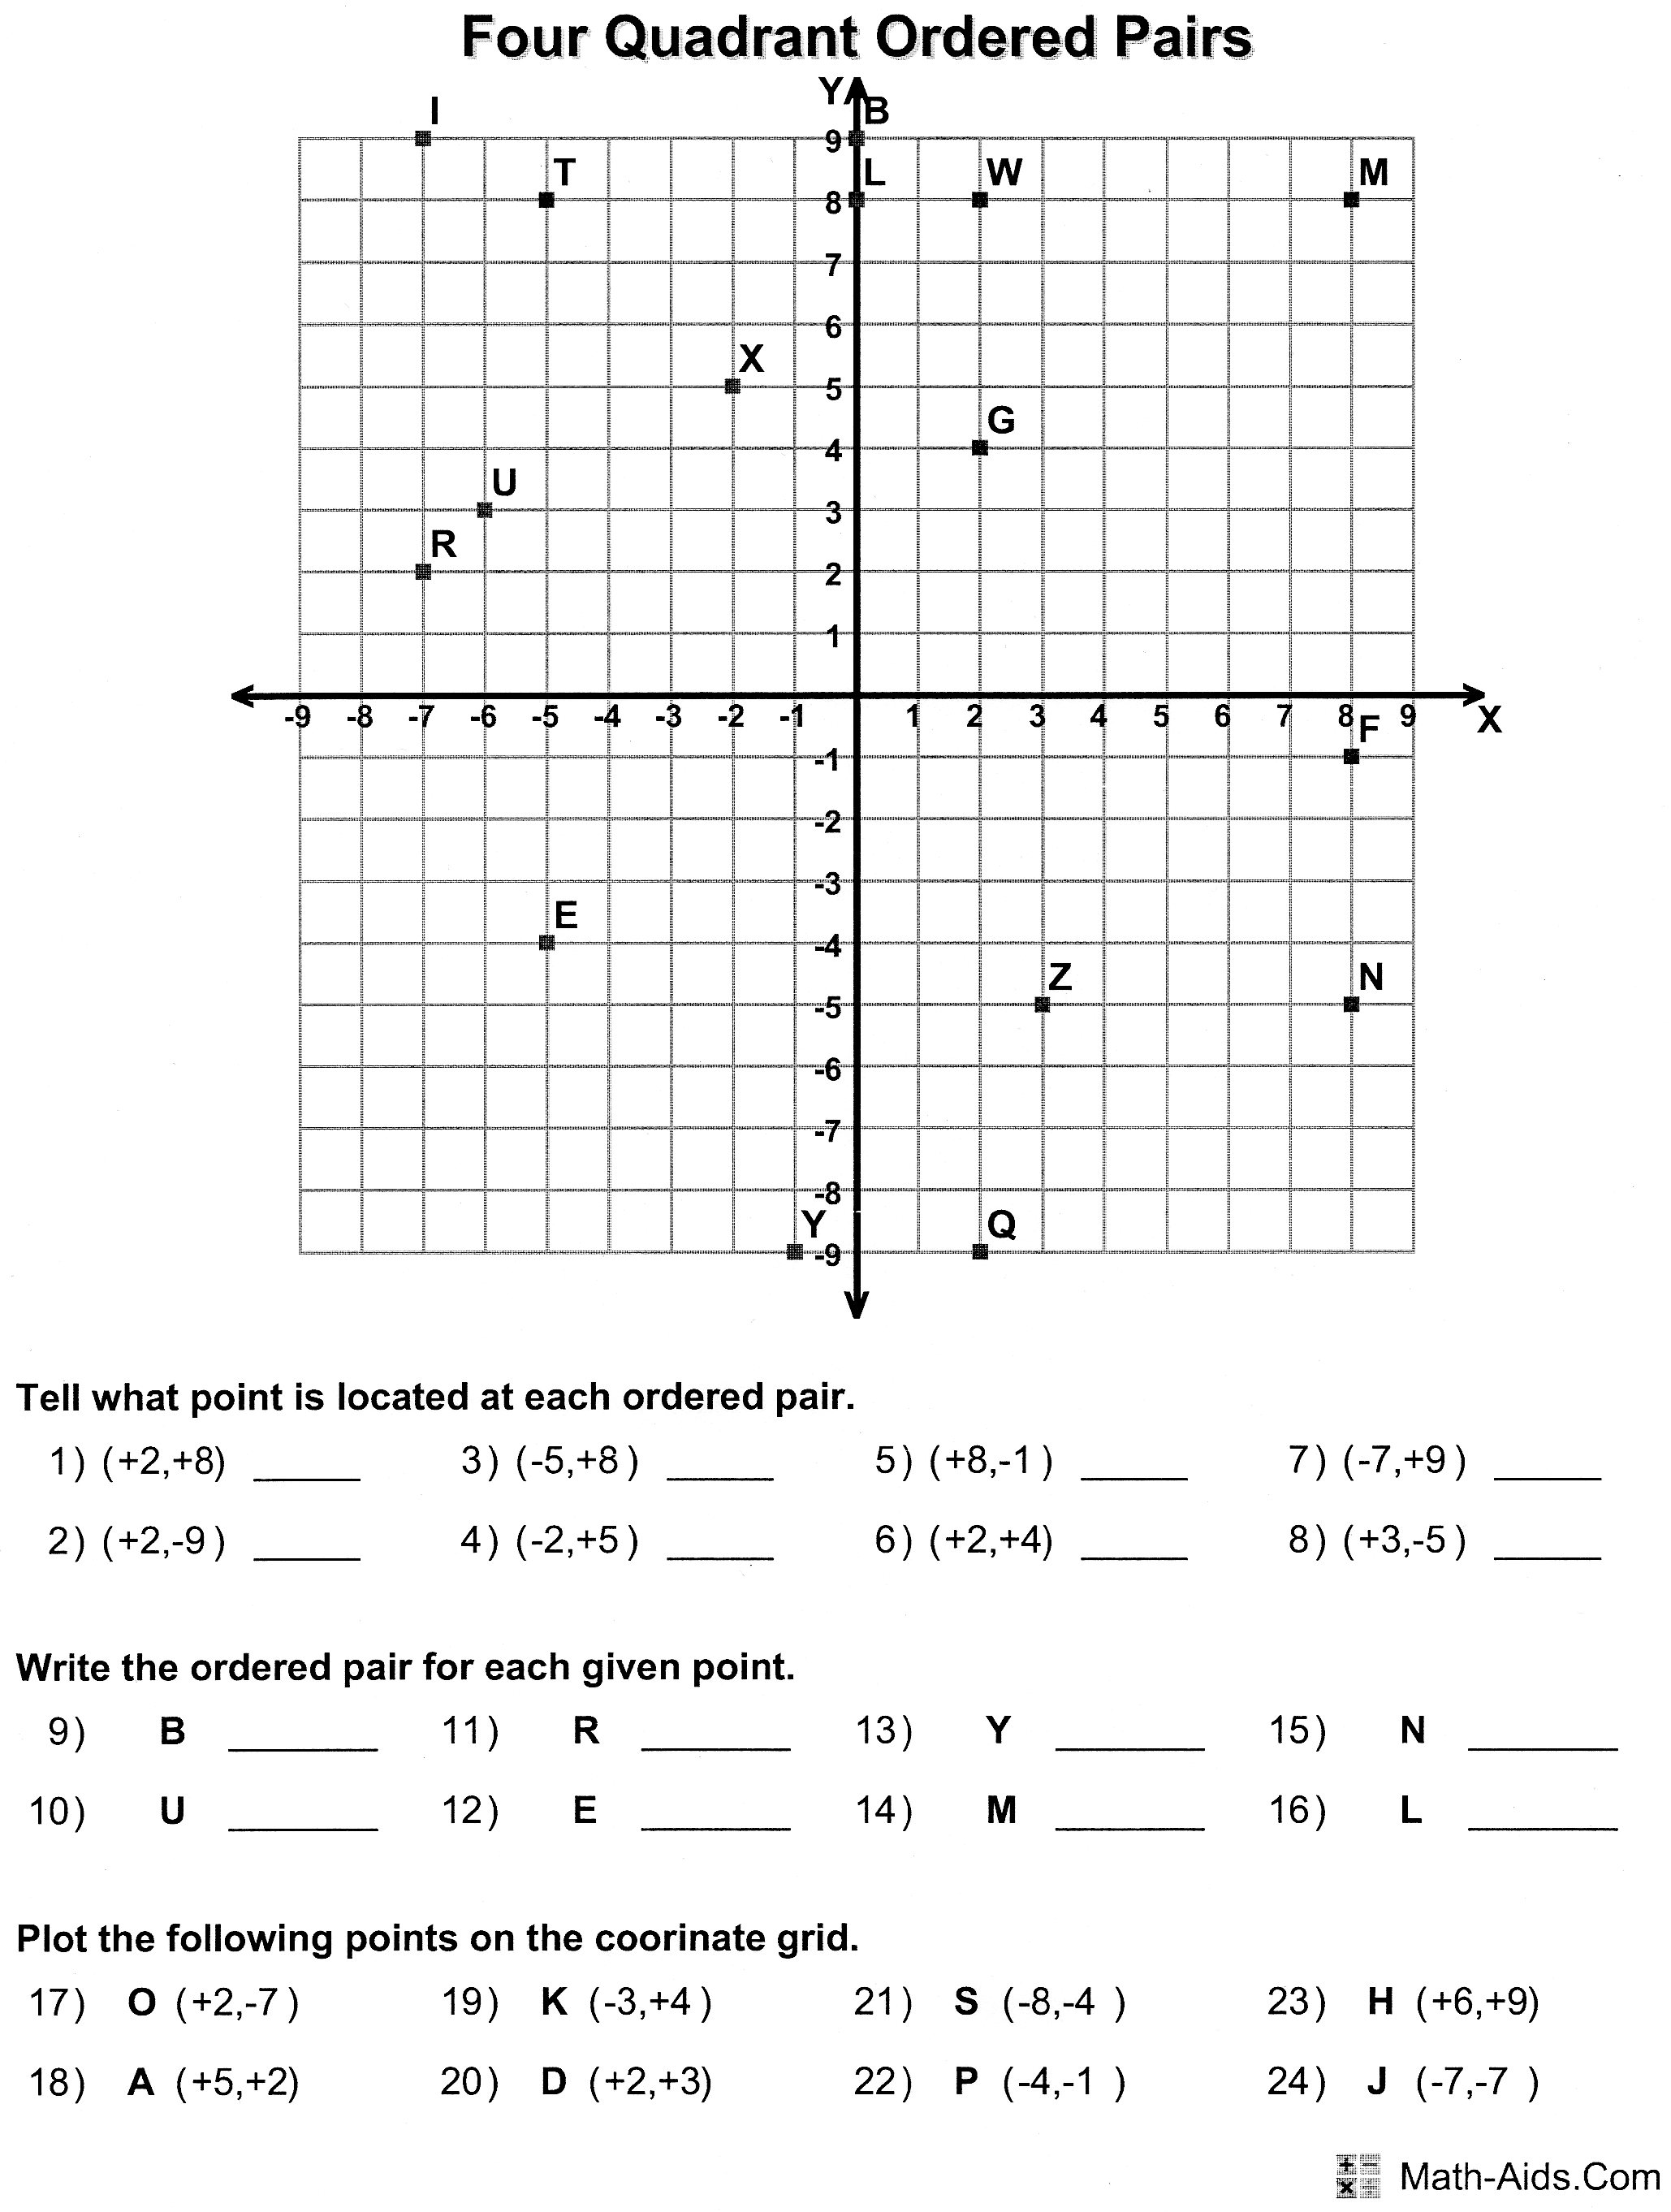 Free Ordered Pairs Worksheet